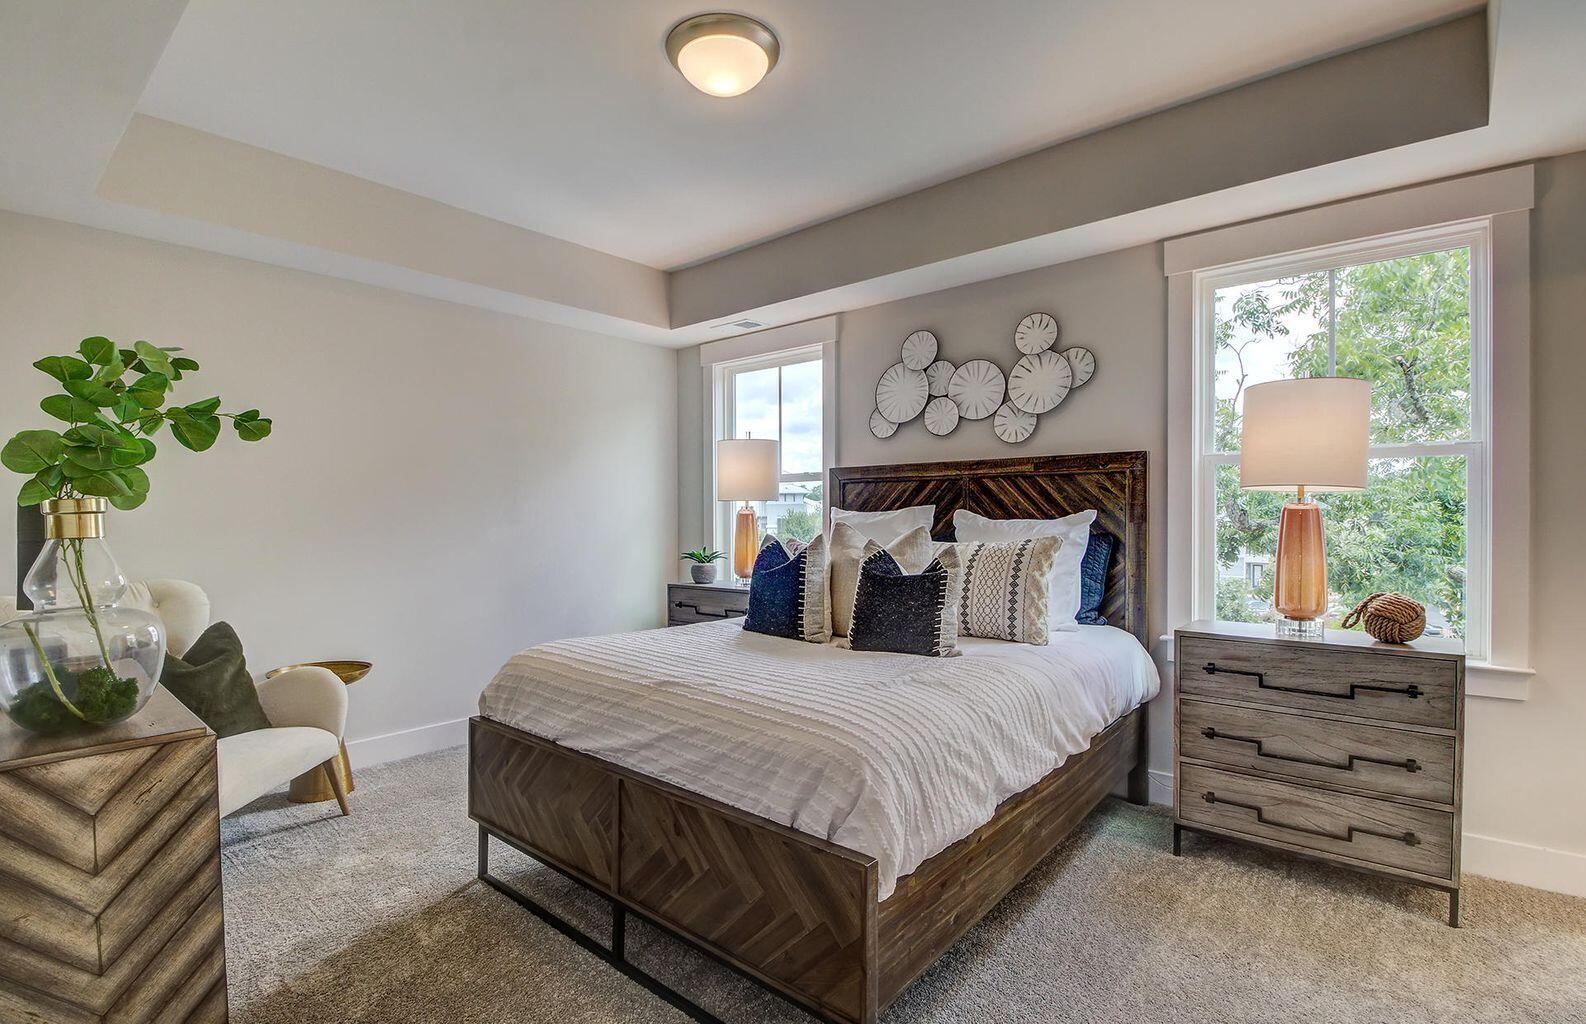 The Cove at Folly Homes For Sale - 2139 Tides End, Charleston, SC - 51